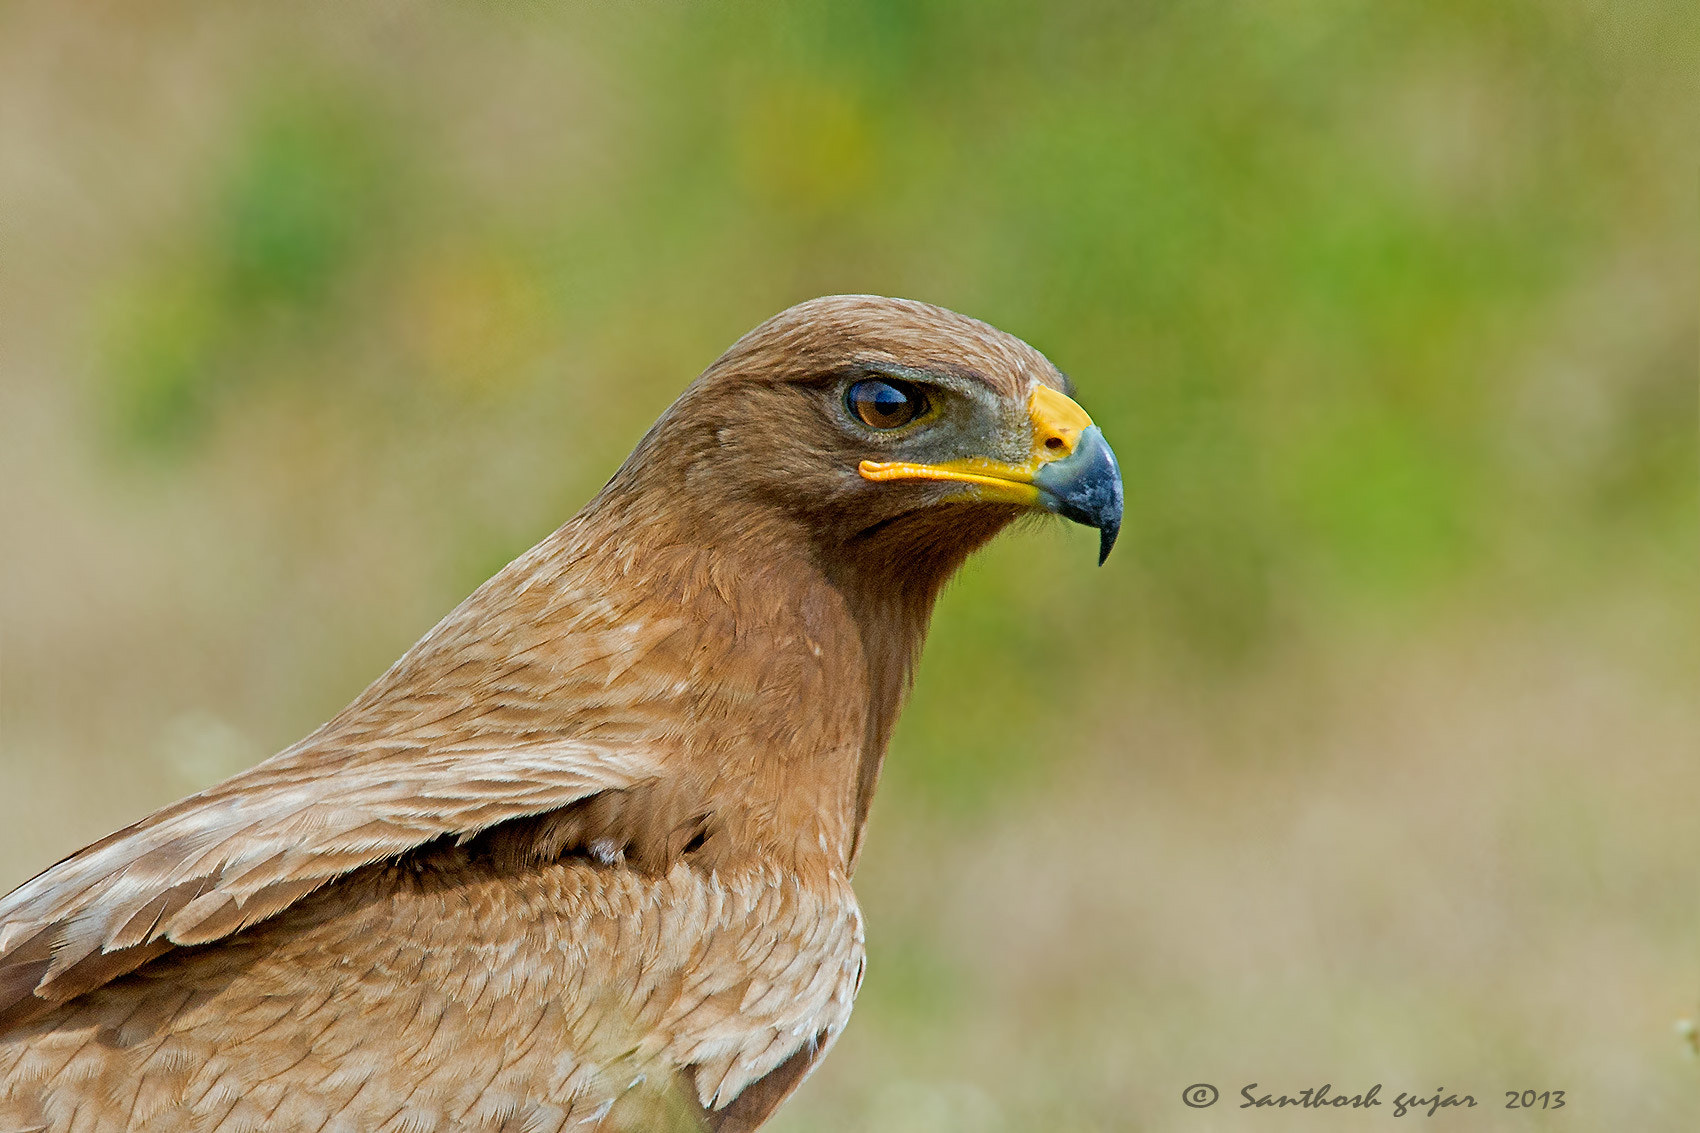 Photograph Up close-- Tawny Eagle by Santhosh Gujar on 500px